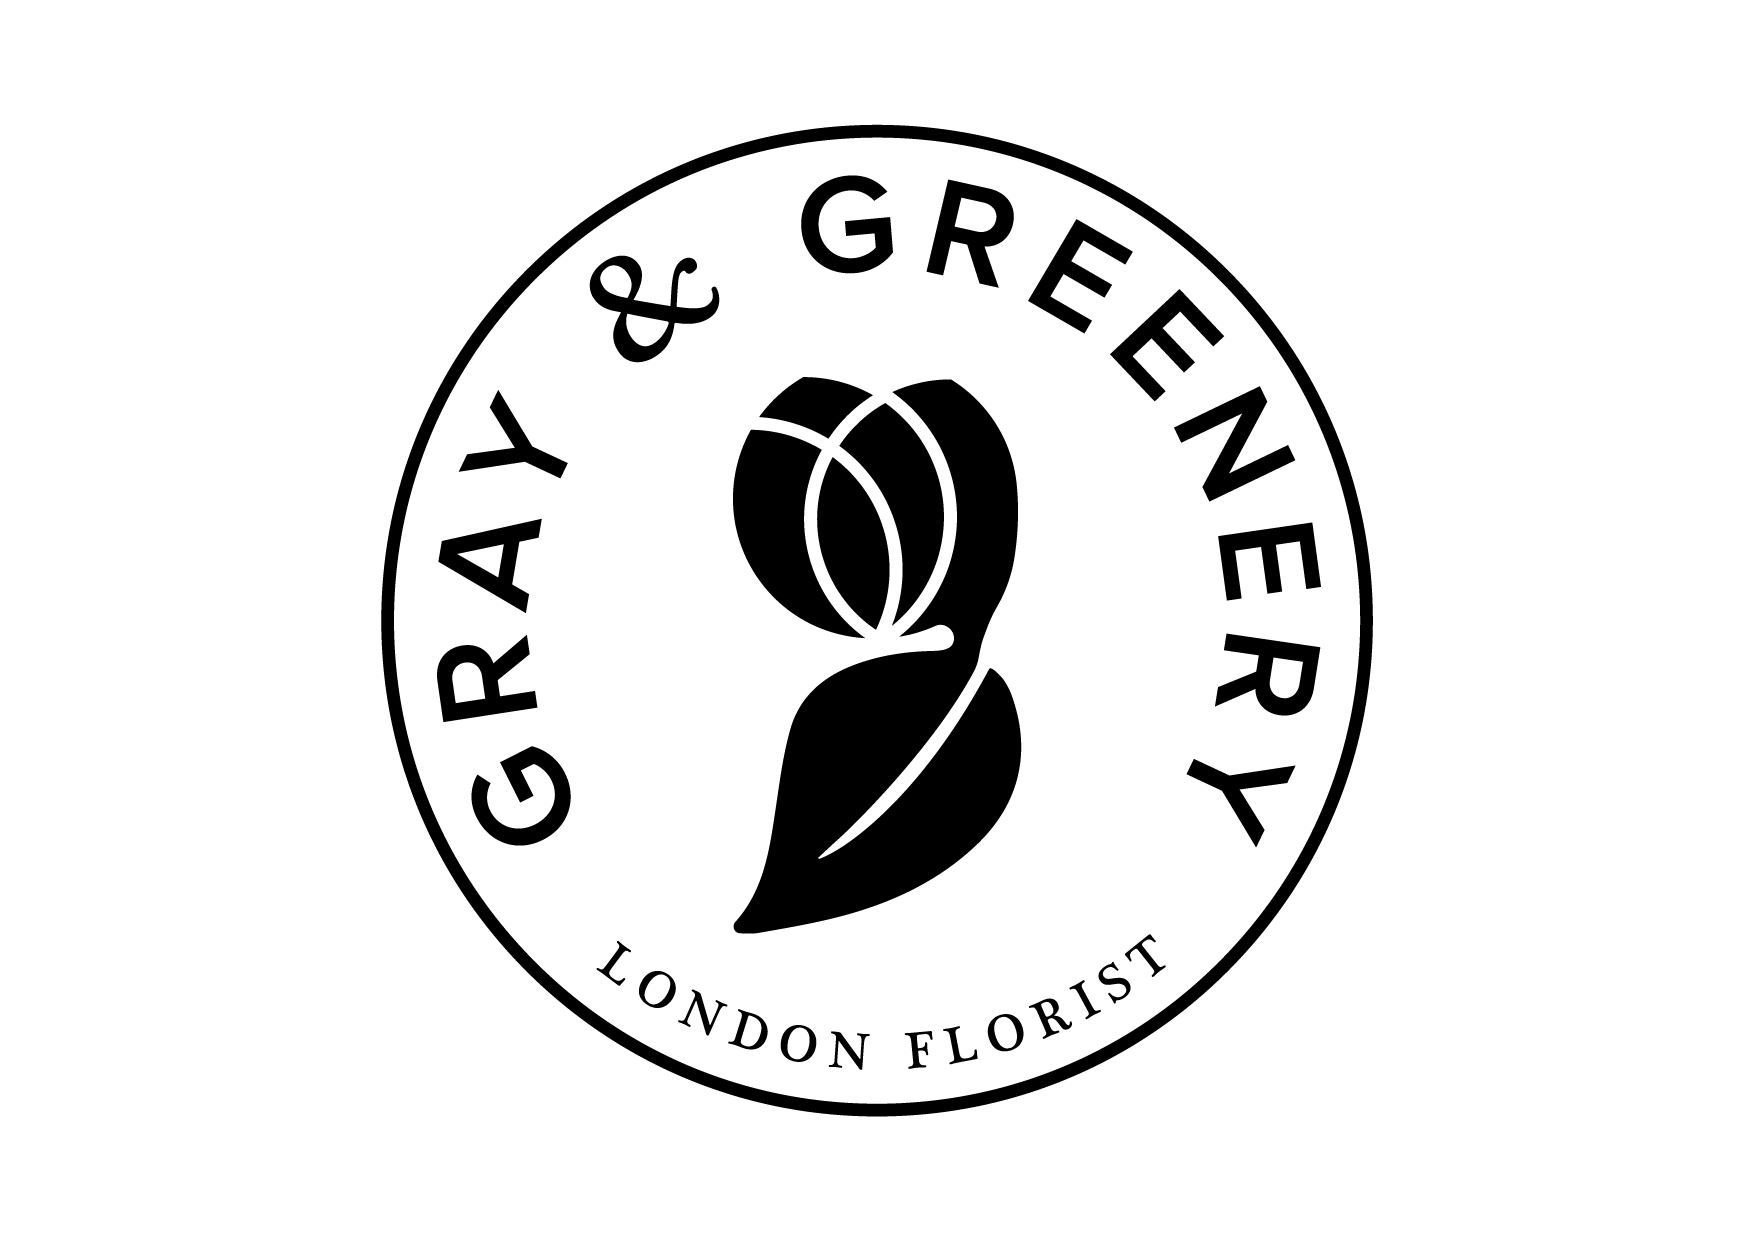 GRAY-&-GREENERY-brand mark-BY-ALSO-AGENCY-06.png